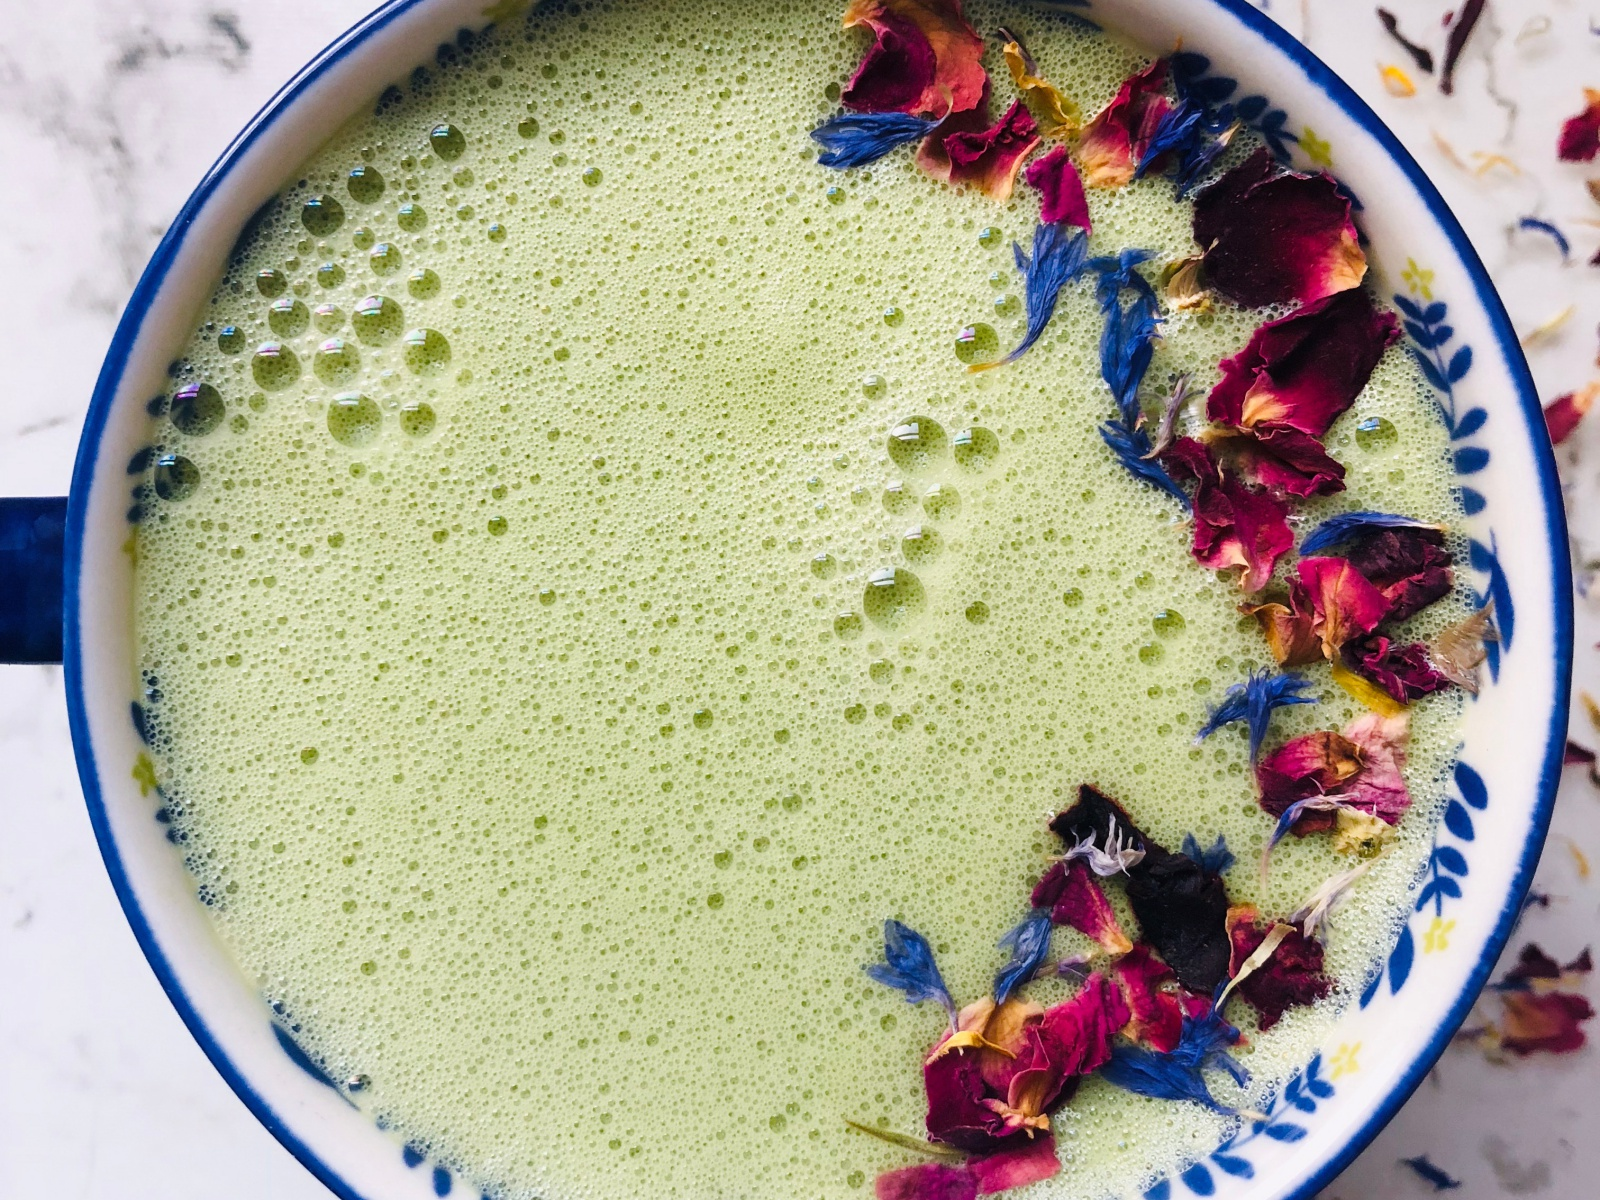 Rich frothy vegan matcha drink